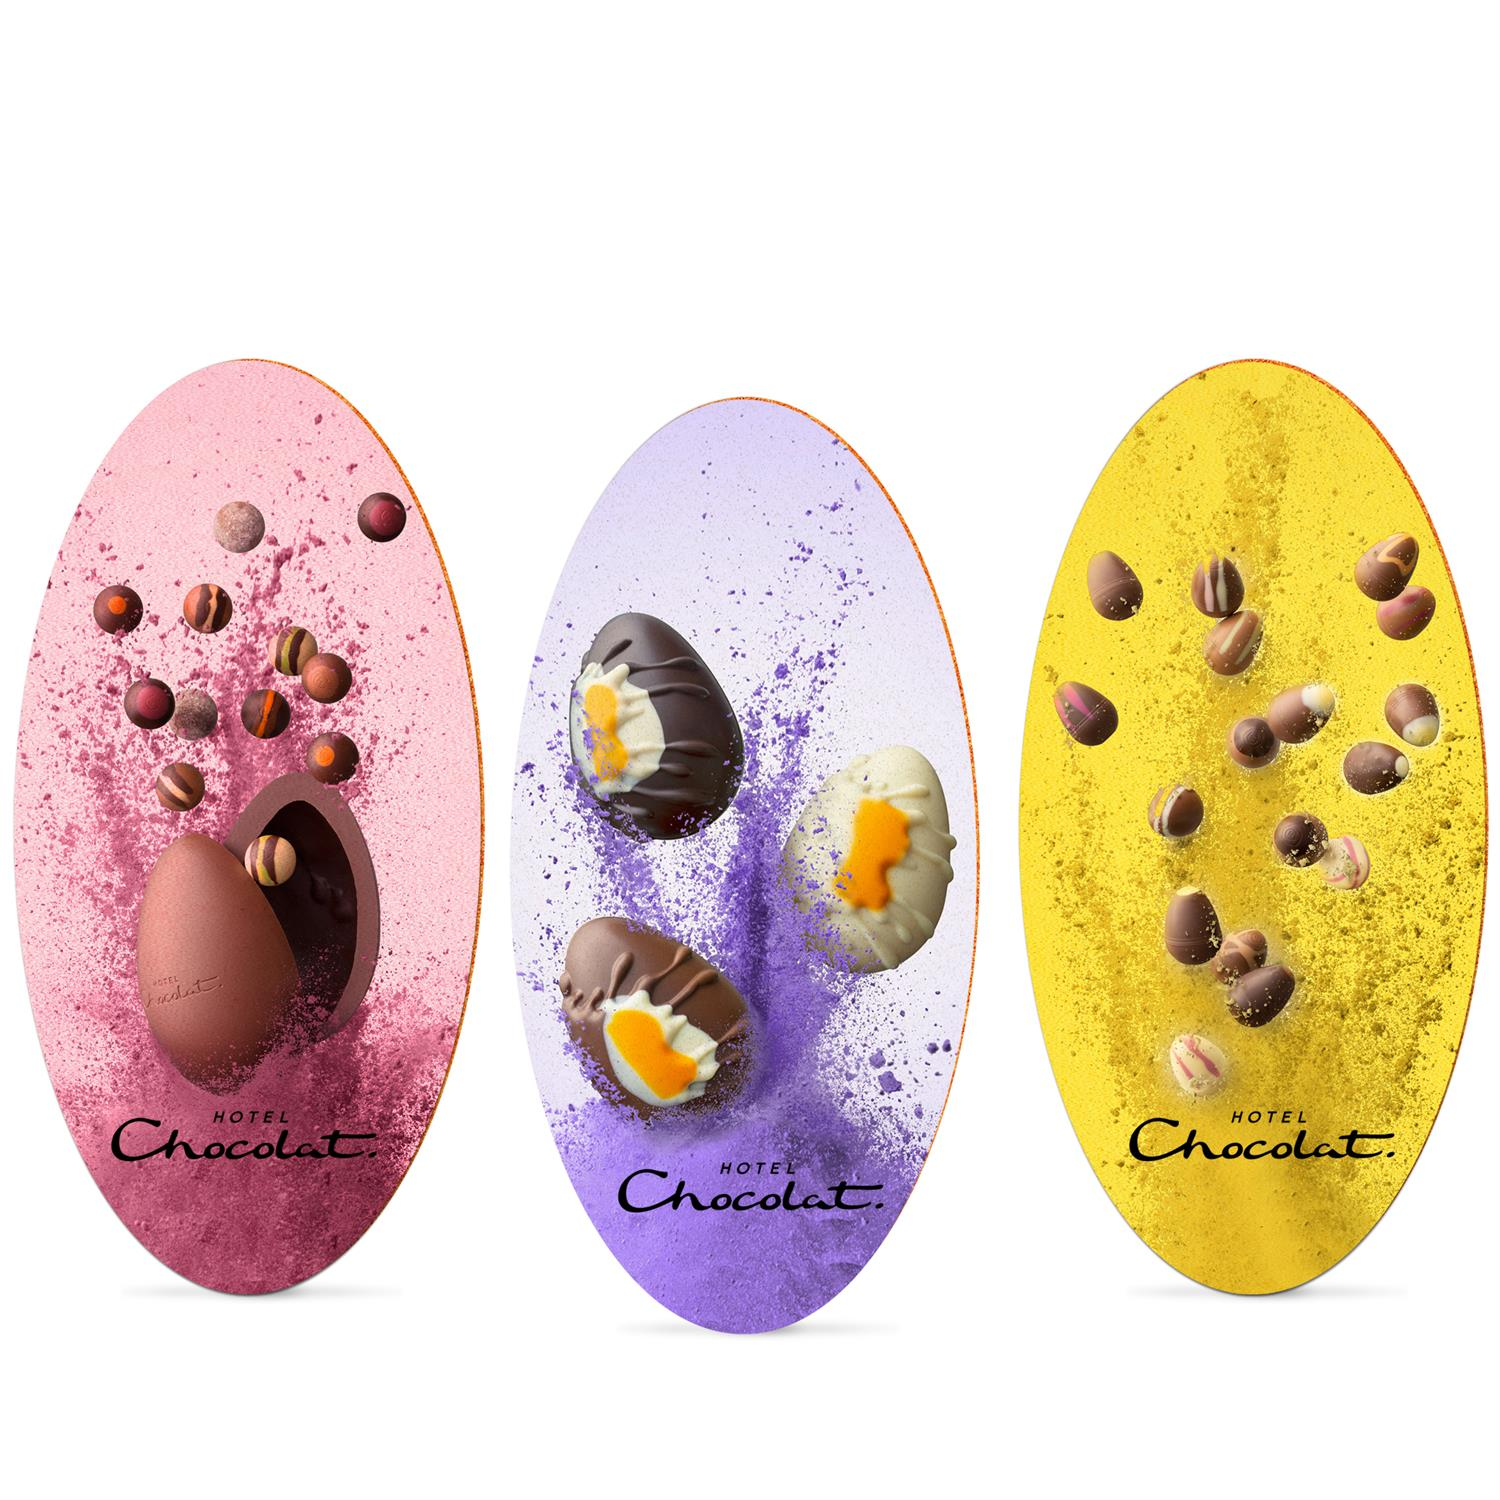 523602 - Easter Egg Shaped Emery Board